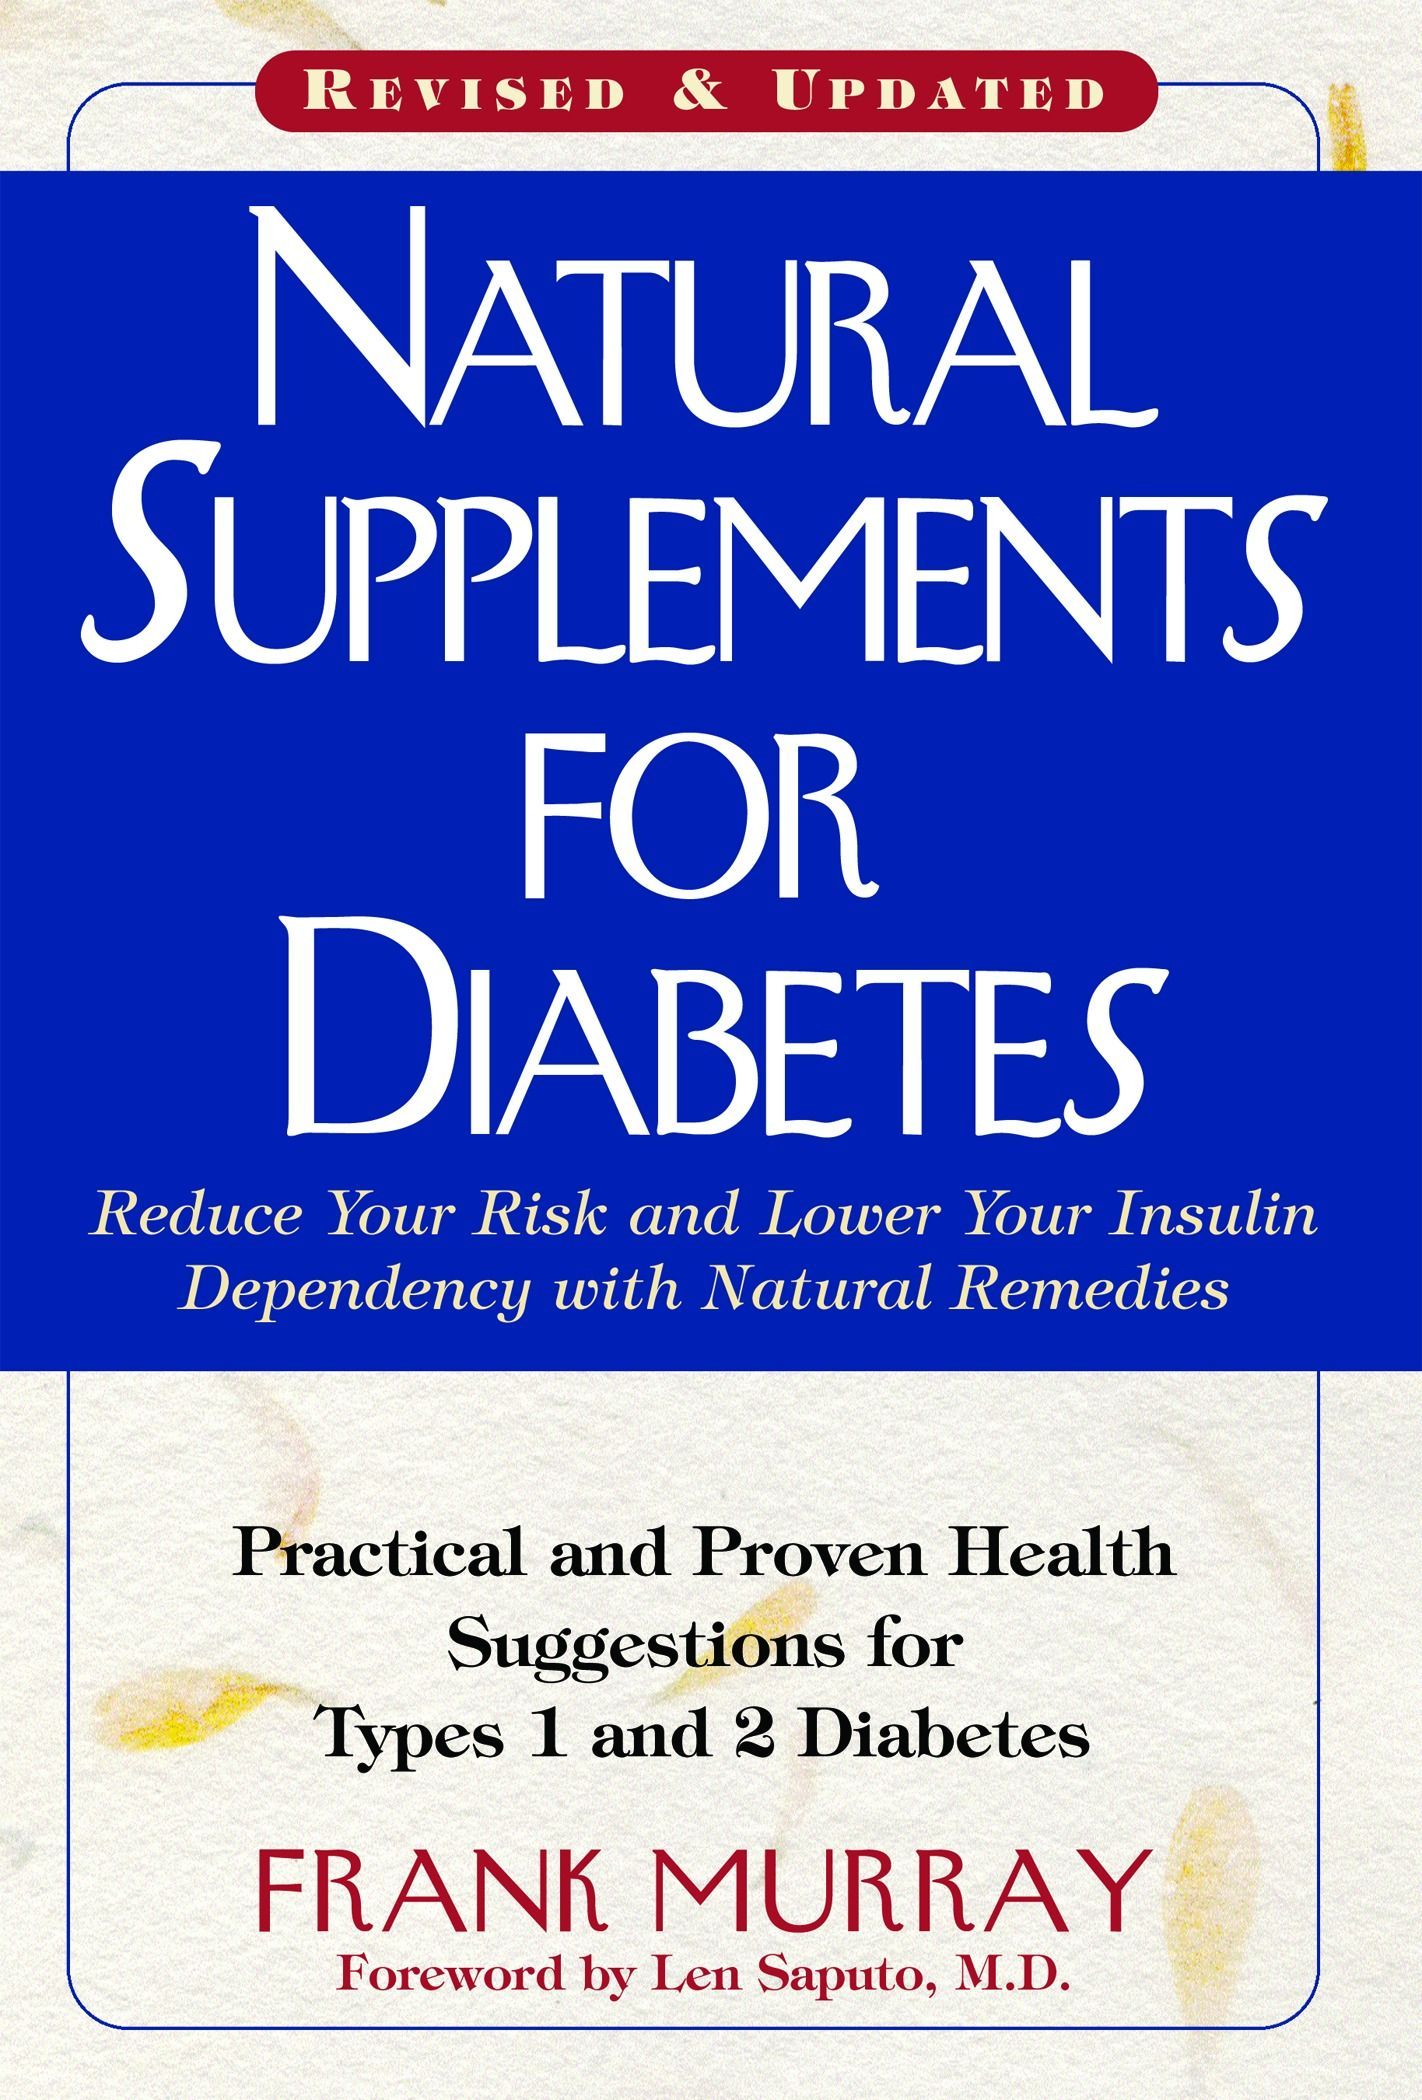 Natural Supplements For Diabetes : Practical And Proven Health Suggestions For Types 1 And 2 Diabetes